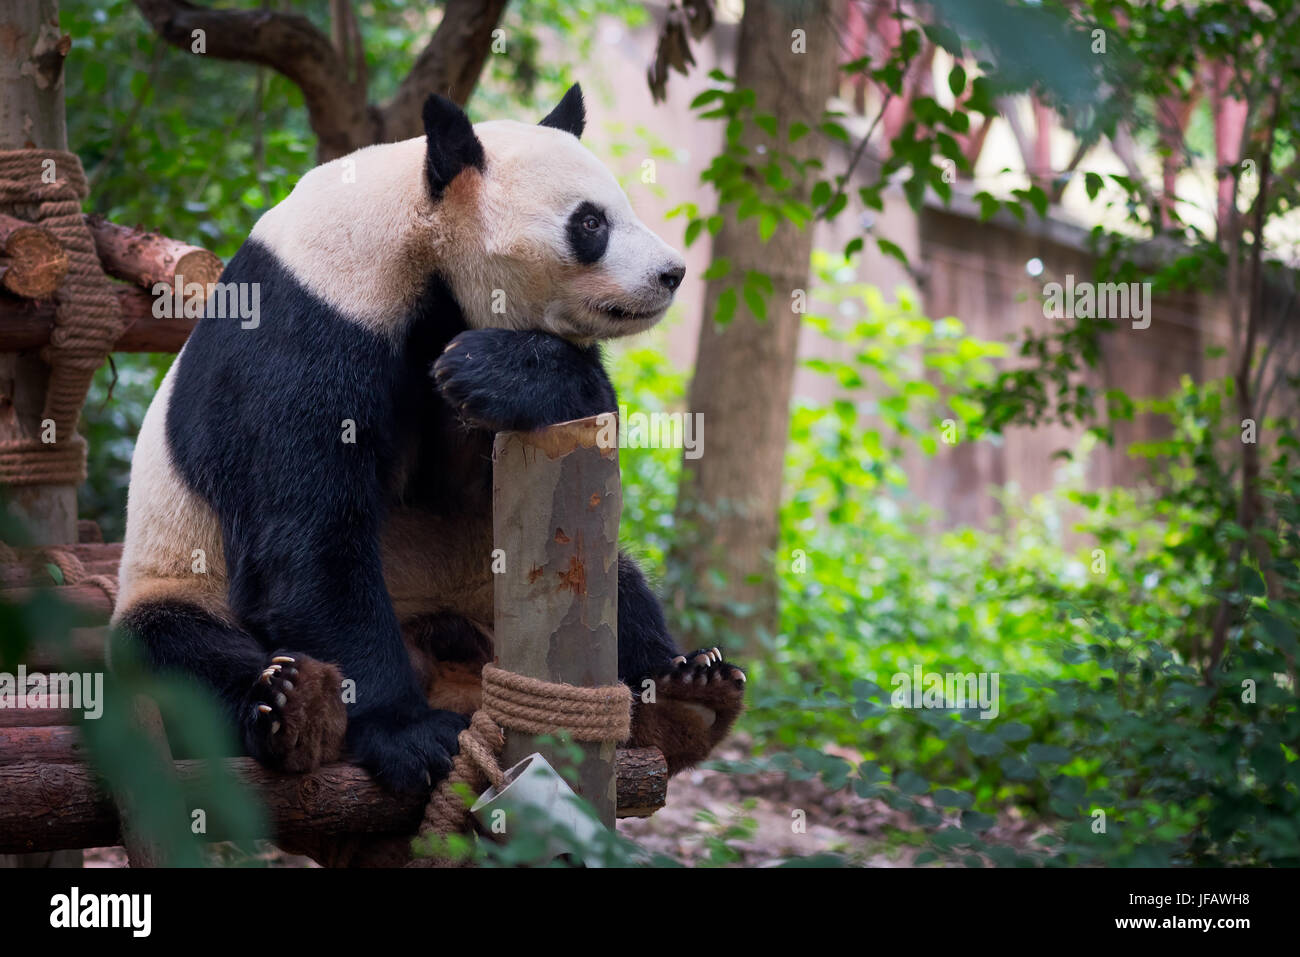 Giant panda sitting on wood and looking far ahead, Chengdu, Sichuan province, China - Stock Image